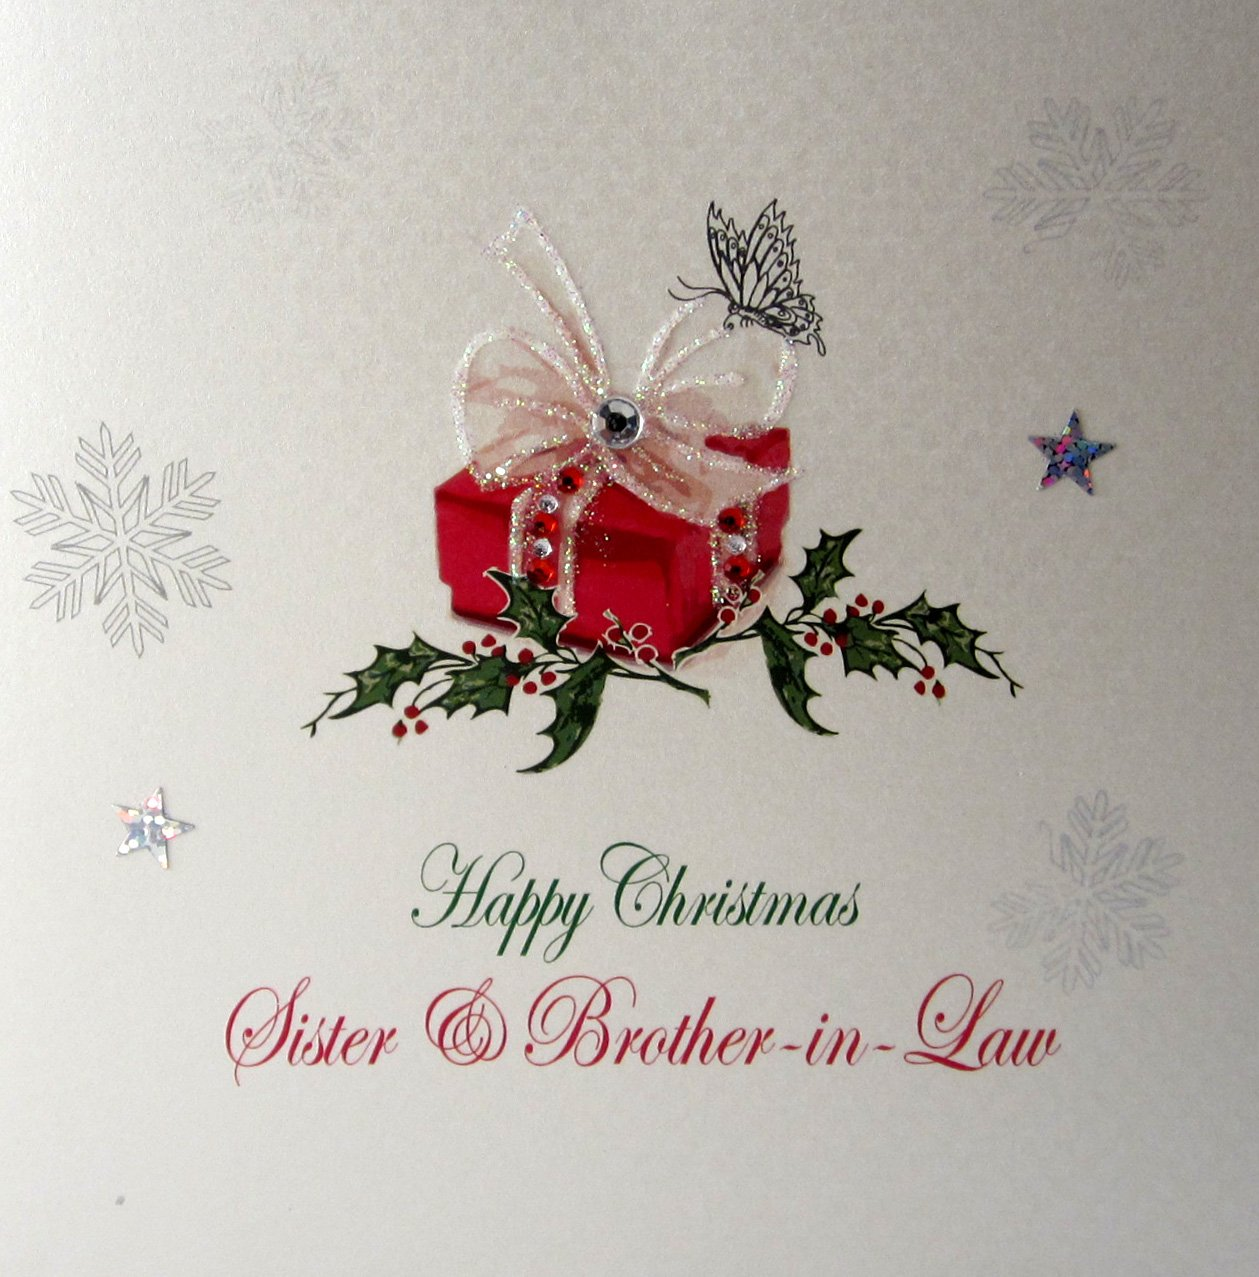 White Cotton Cards X117 Happy Christmas Sister And Brother In Law Handmade Christmas Card With Present Design White Seasonal